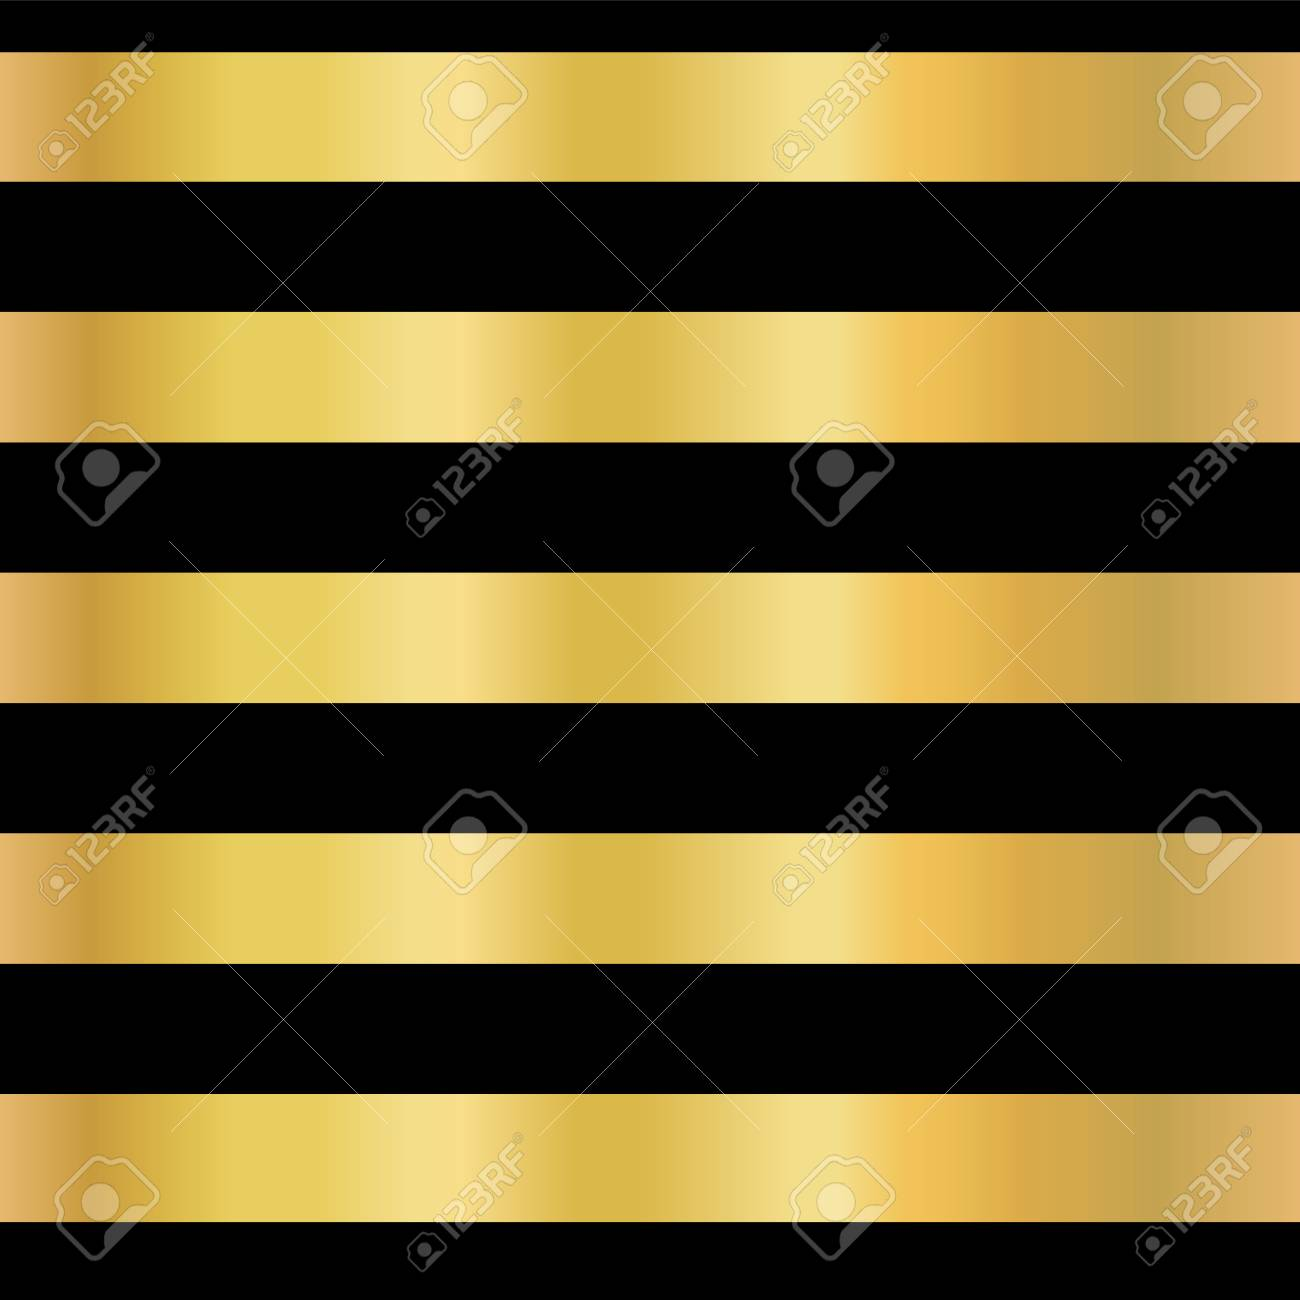 Gold Foil Stripe Seamless Vector Background Horizontal Gold